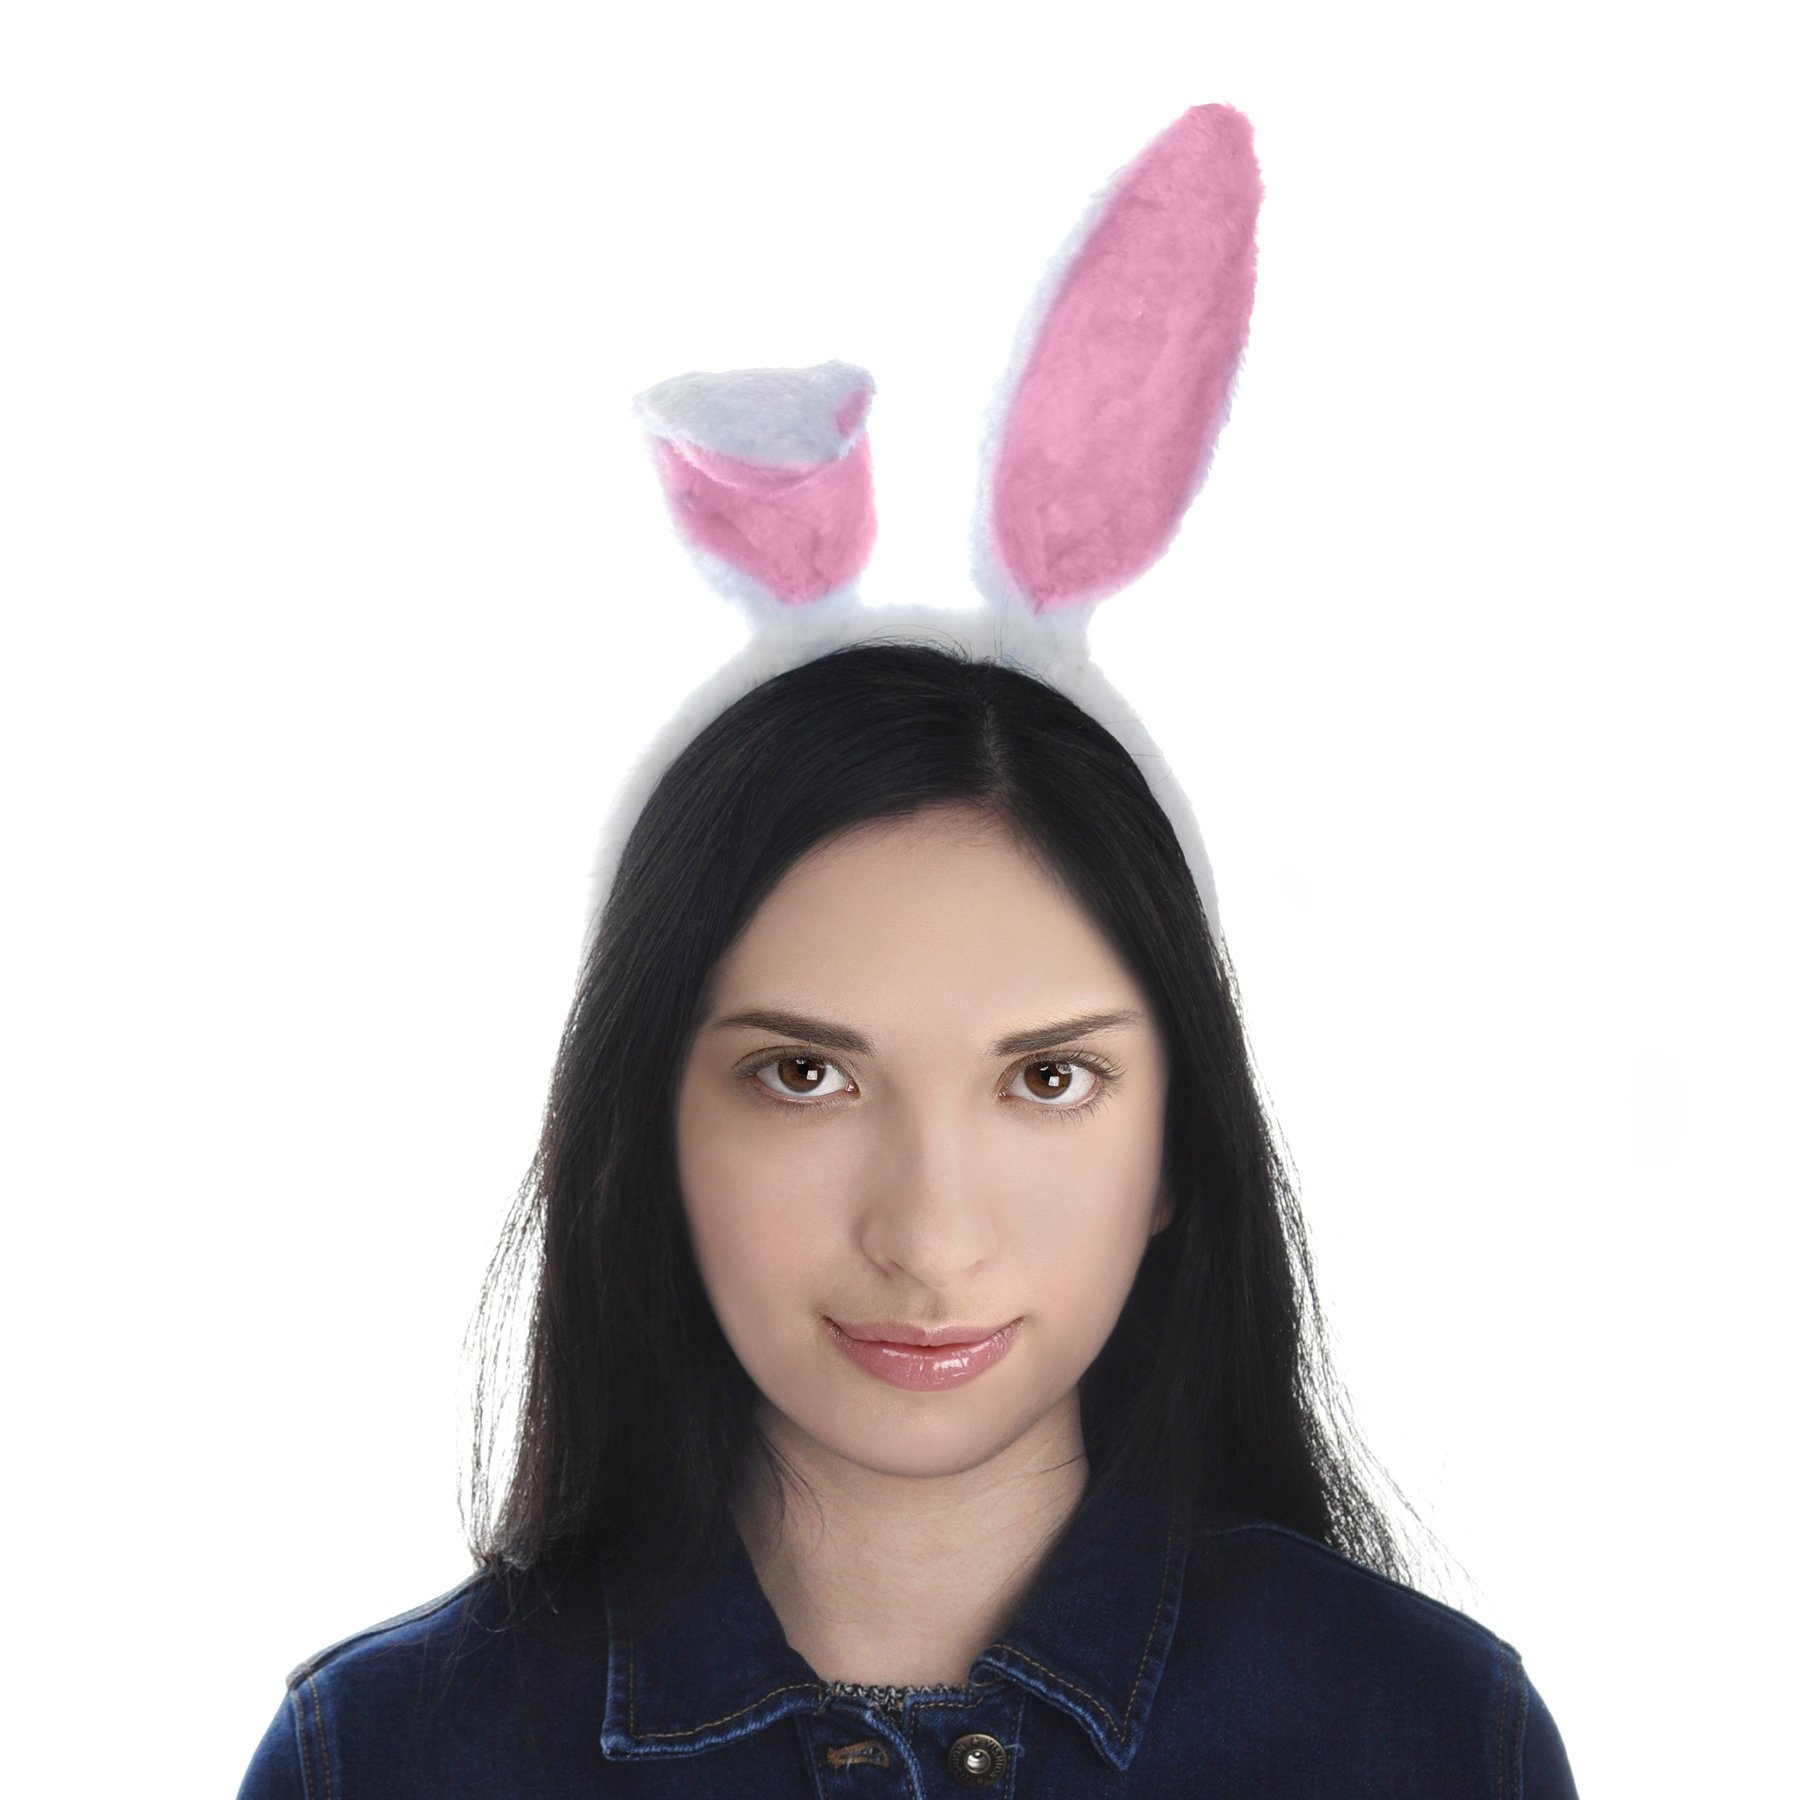 Toptie Easter Bunny Ears Headband, Soft Touch Plush Cosplay Party Suppliers-White-1pc by TOPTIE (Image #5)